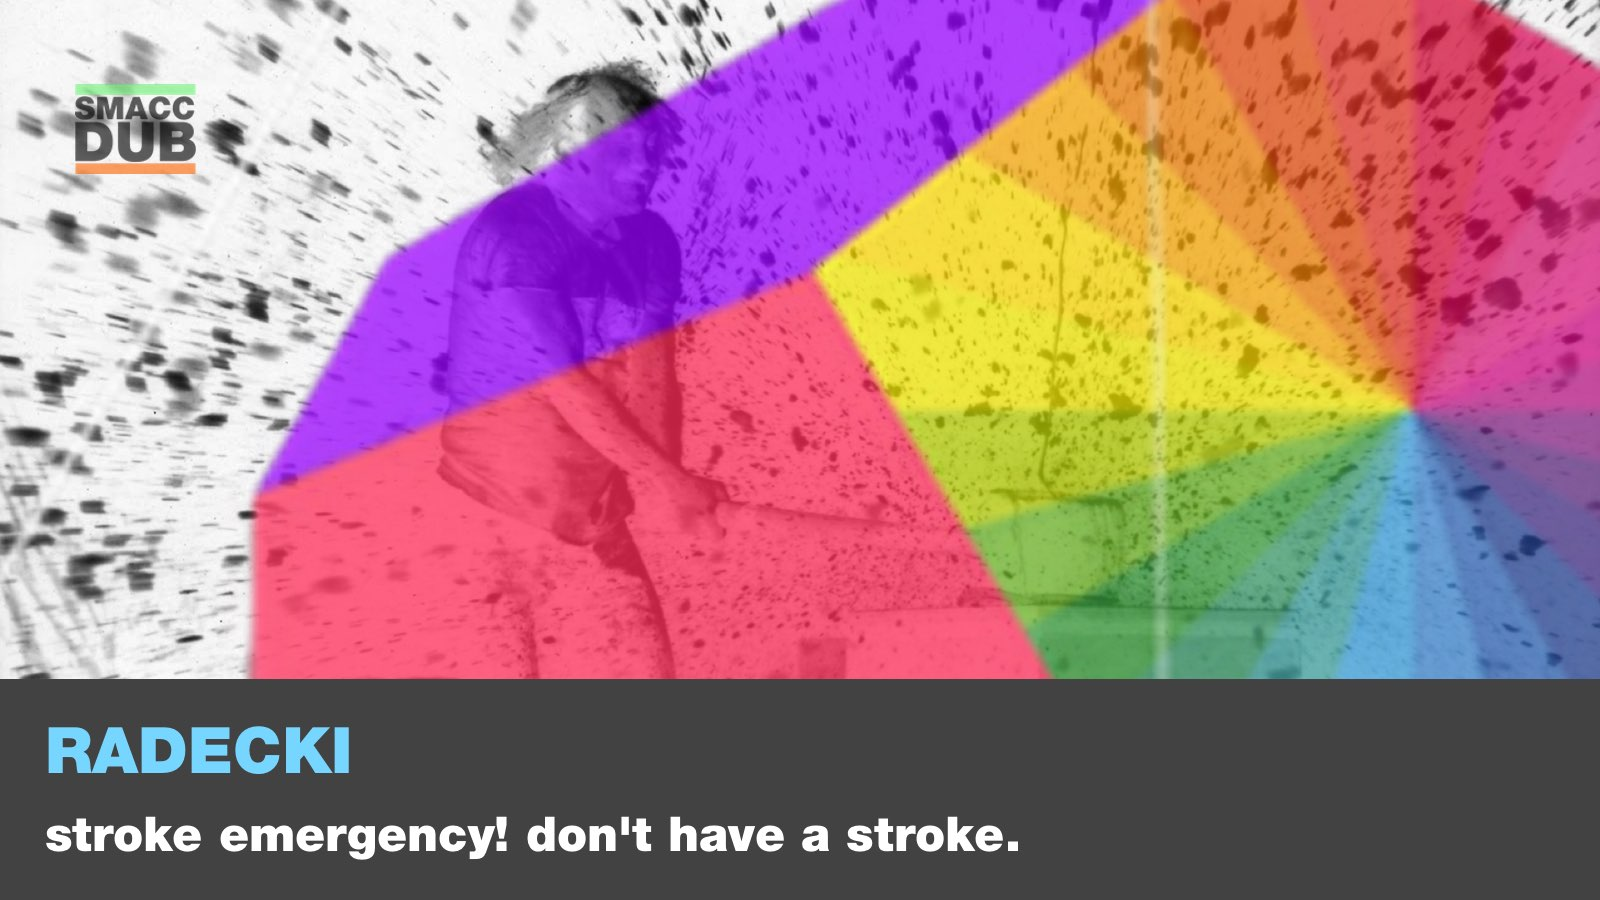 Radecki - Stroke emergency! don't have a stroke.